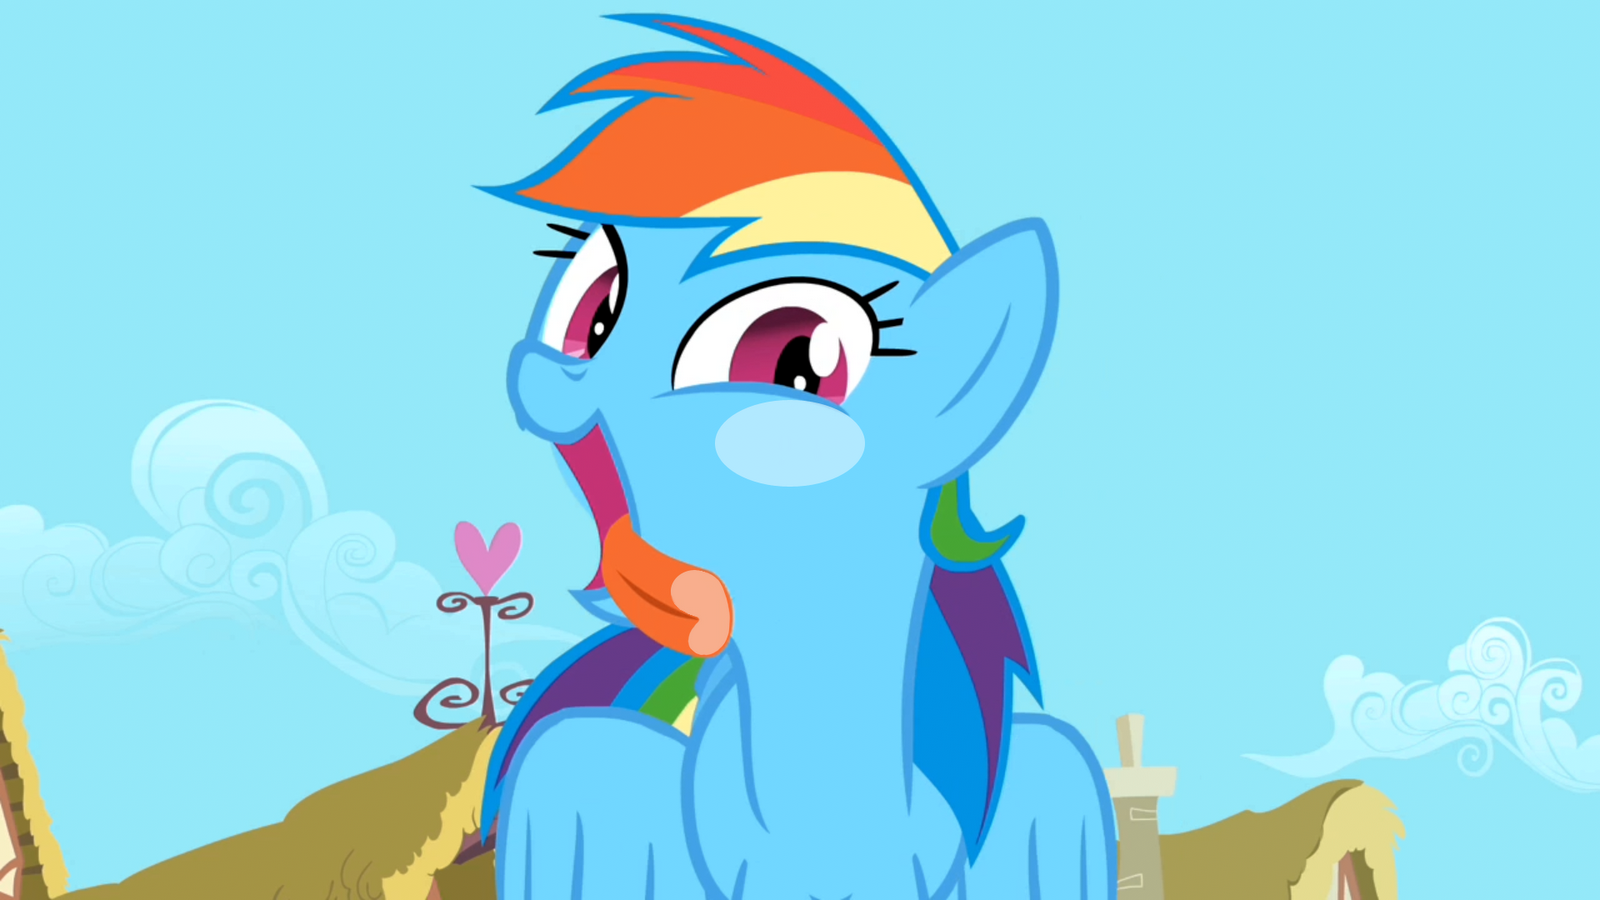 http://4.bp.blogspot.com/-PeNbVwxKSuM/TwbTEoFn07I/AAAAAAAAAaM/IMBuacAK9o4/s1600/5475_lick_rainbow_dash_screen_wallpaper.png